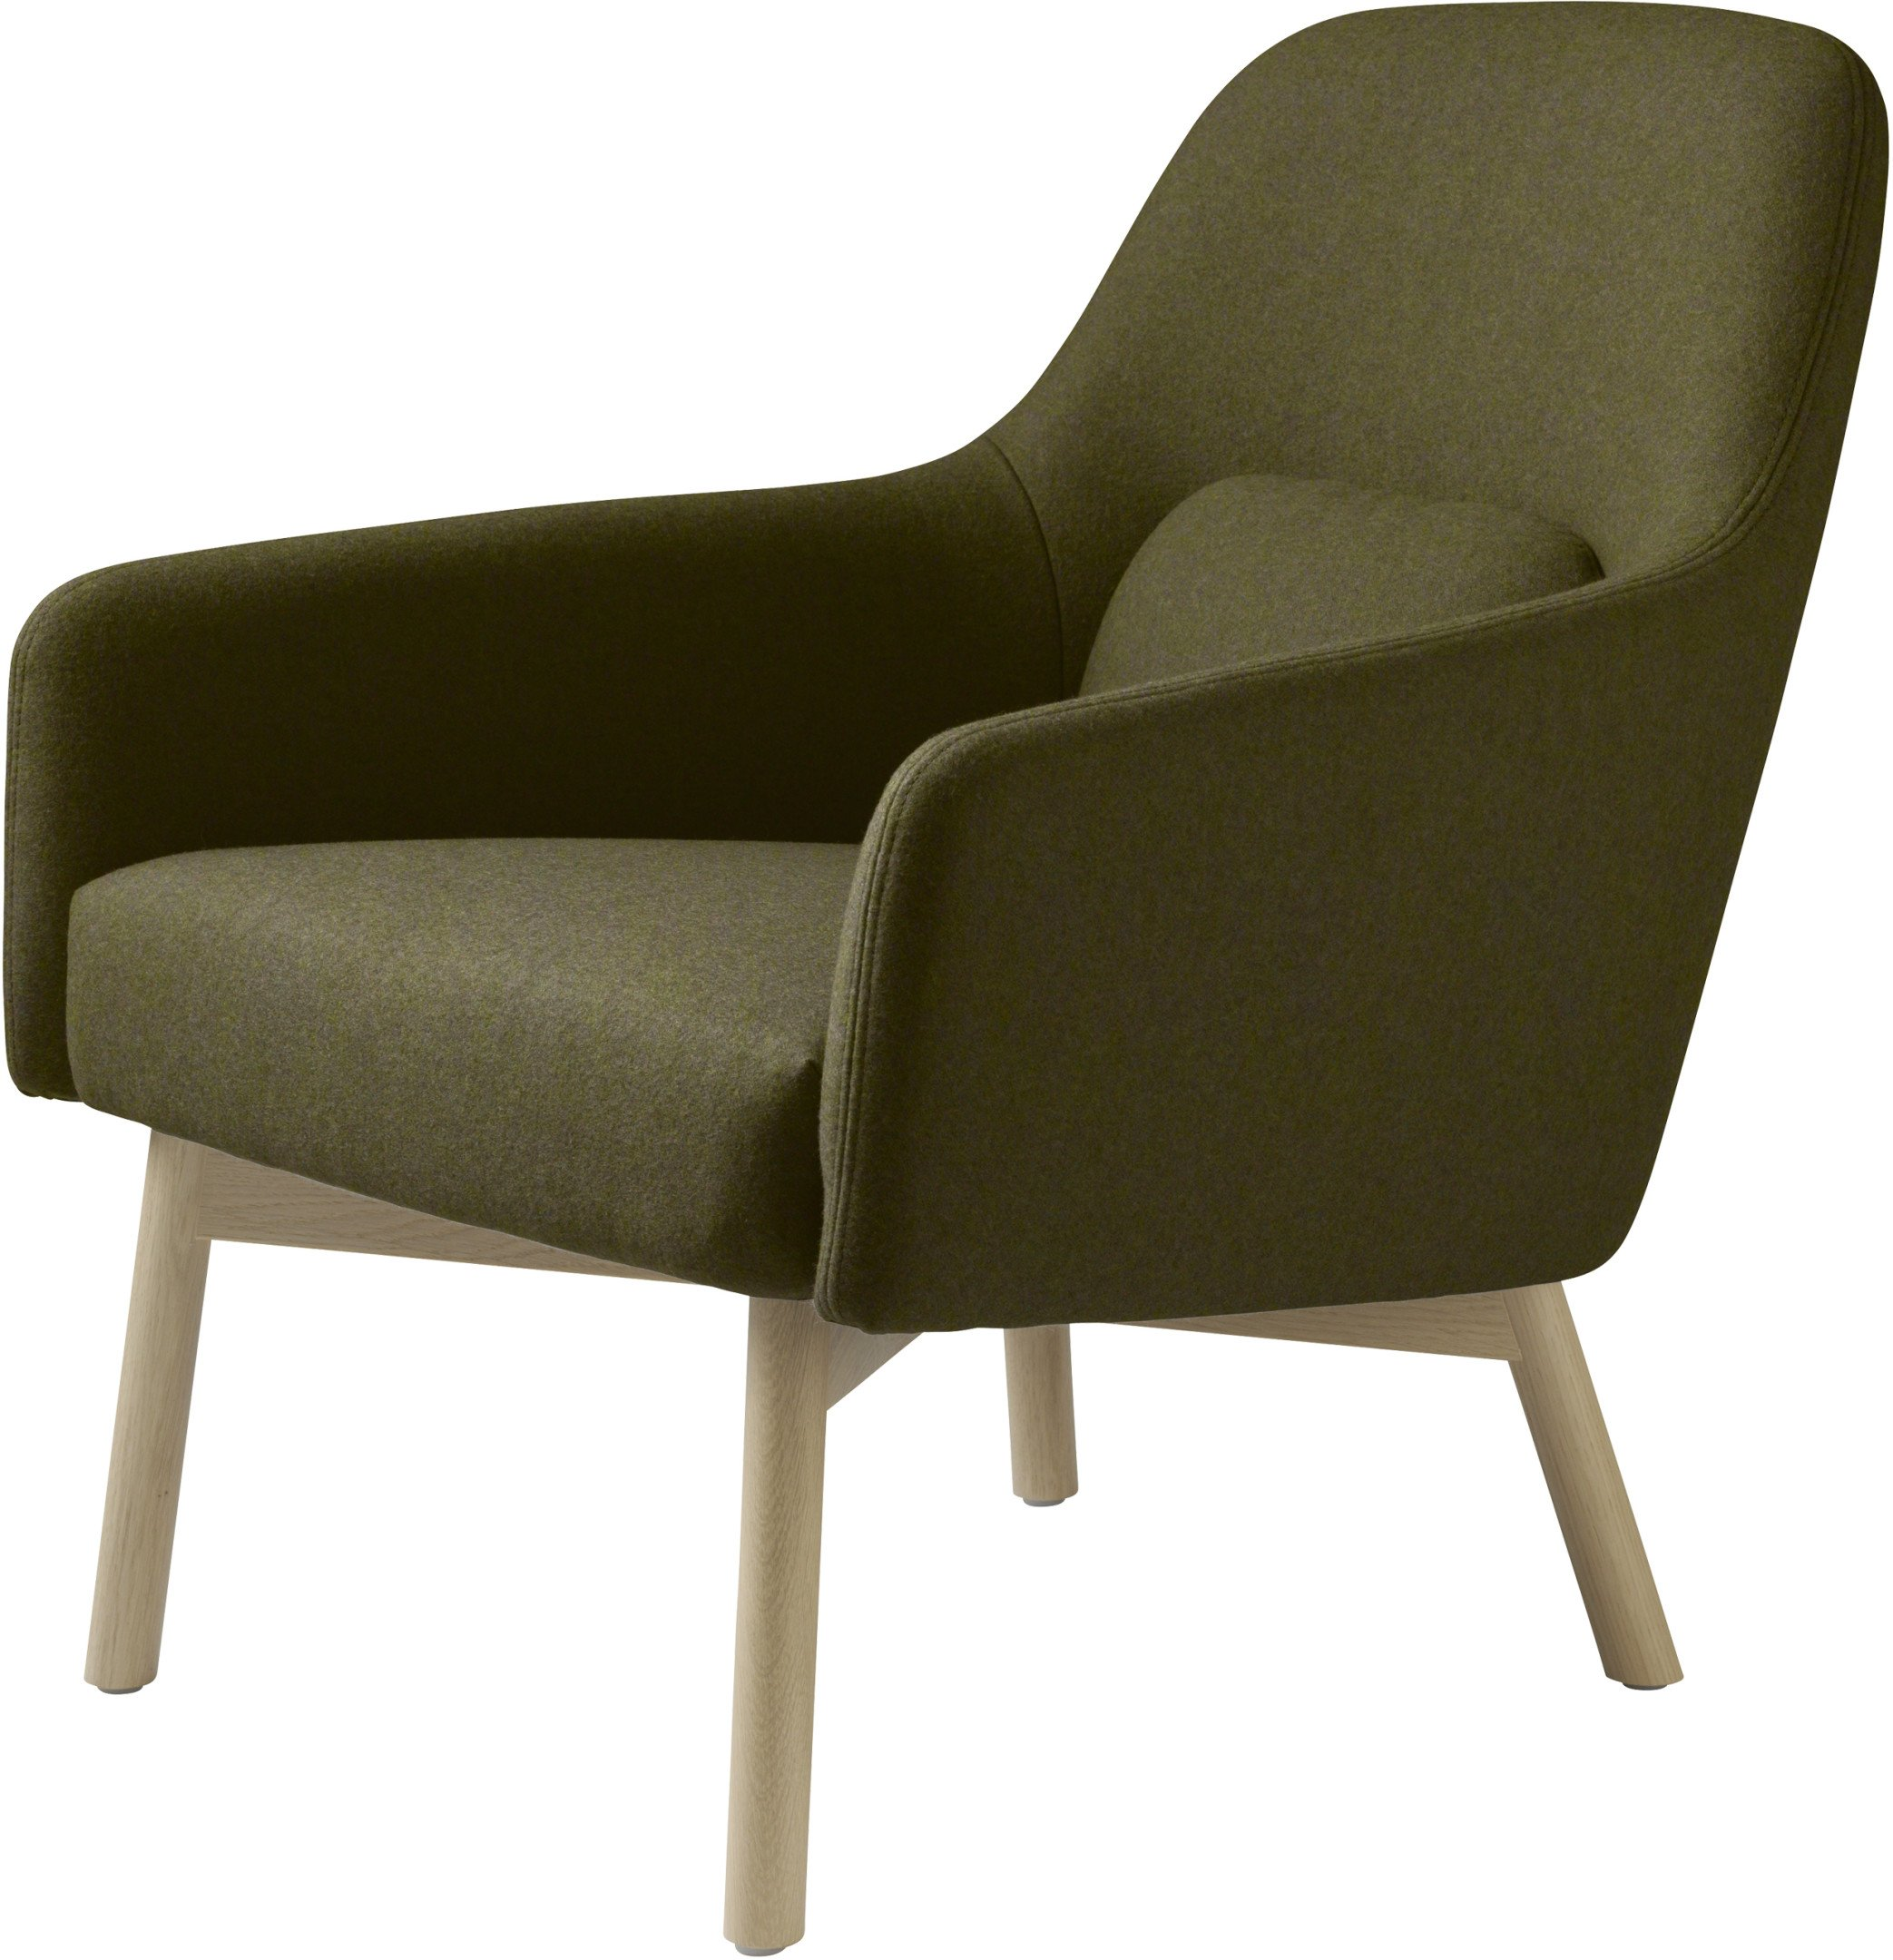 L33 Gesja Armchair Green by J. Foersom & P. Hiort-Lorenzen for FDB Møbler - 504038 - photo